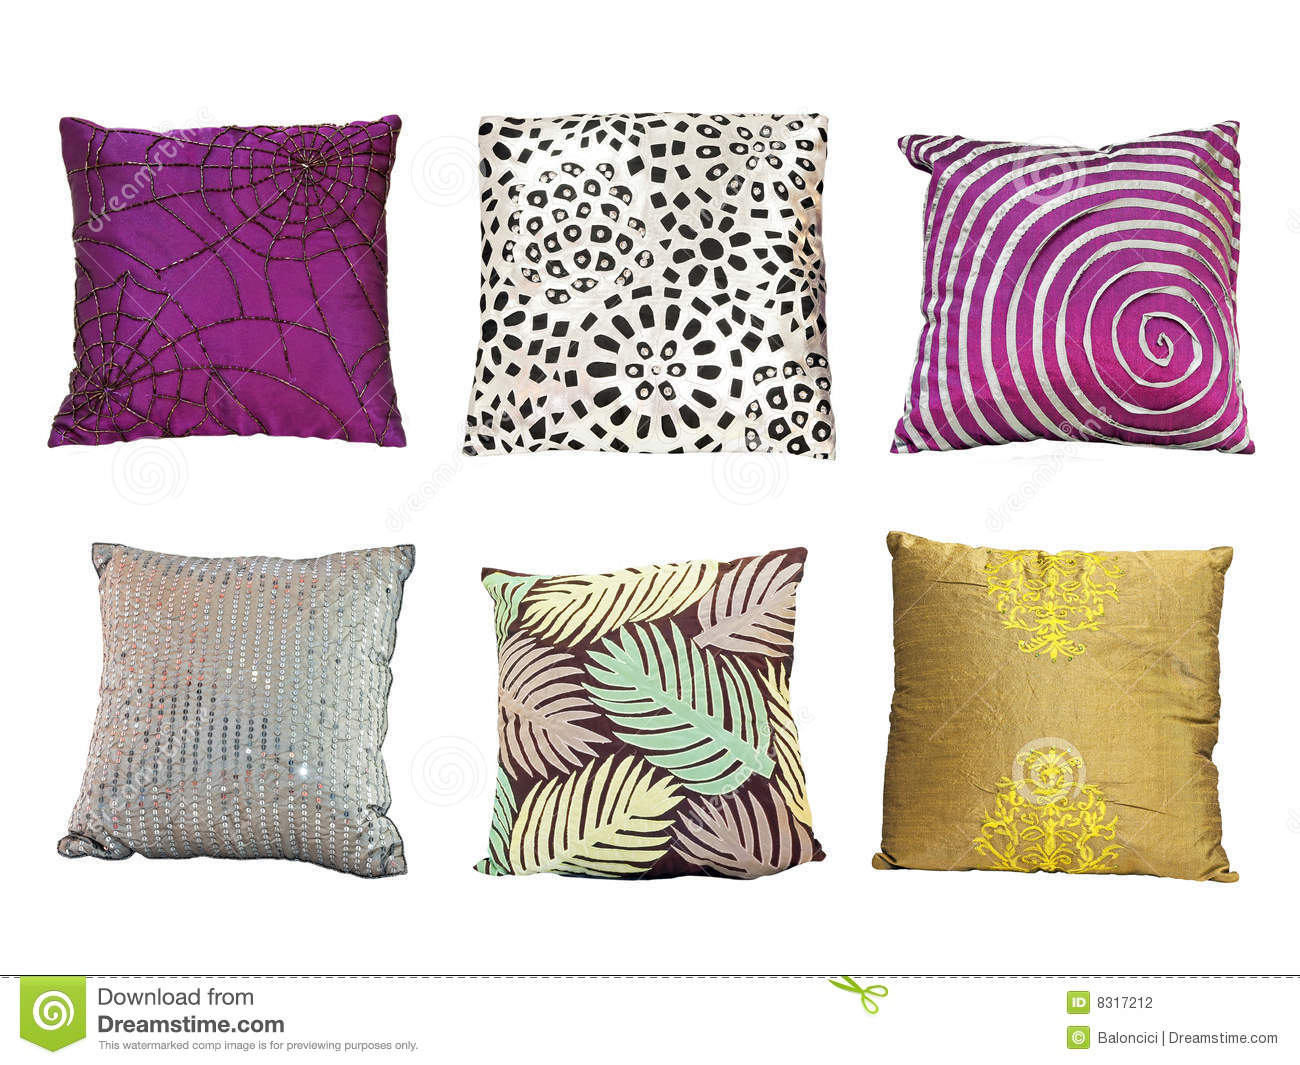 colorful pillows texture. royalty-free stock photo. download pillows texture colorful h